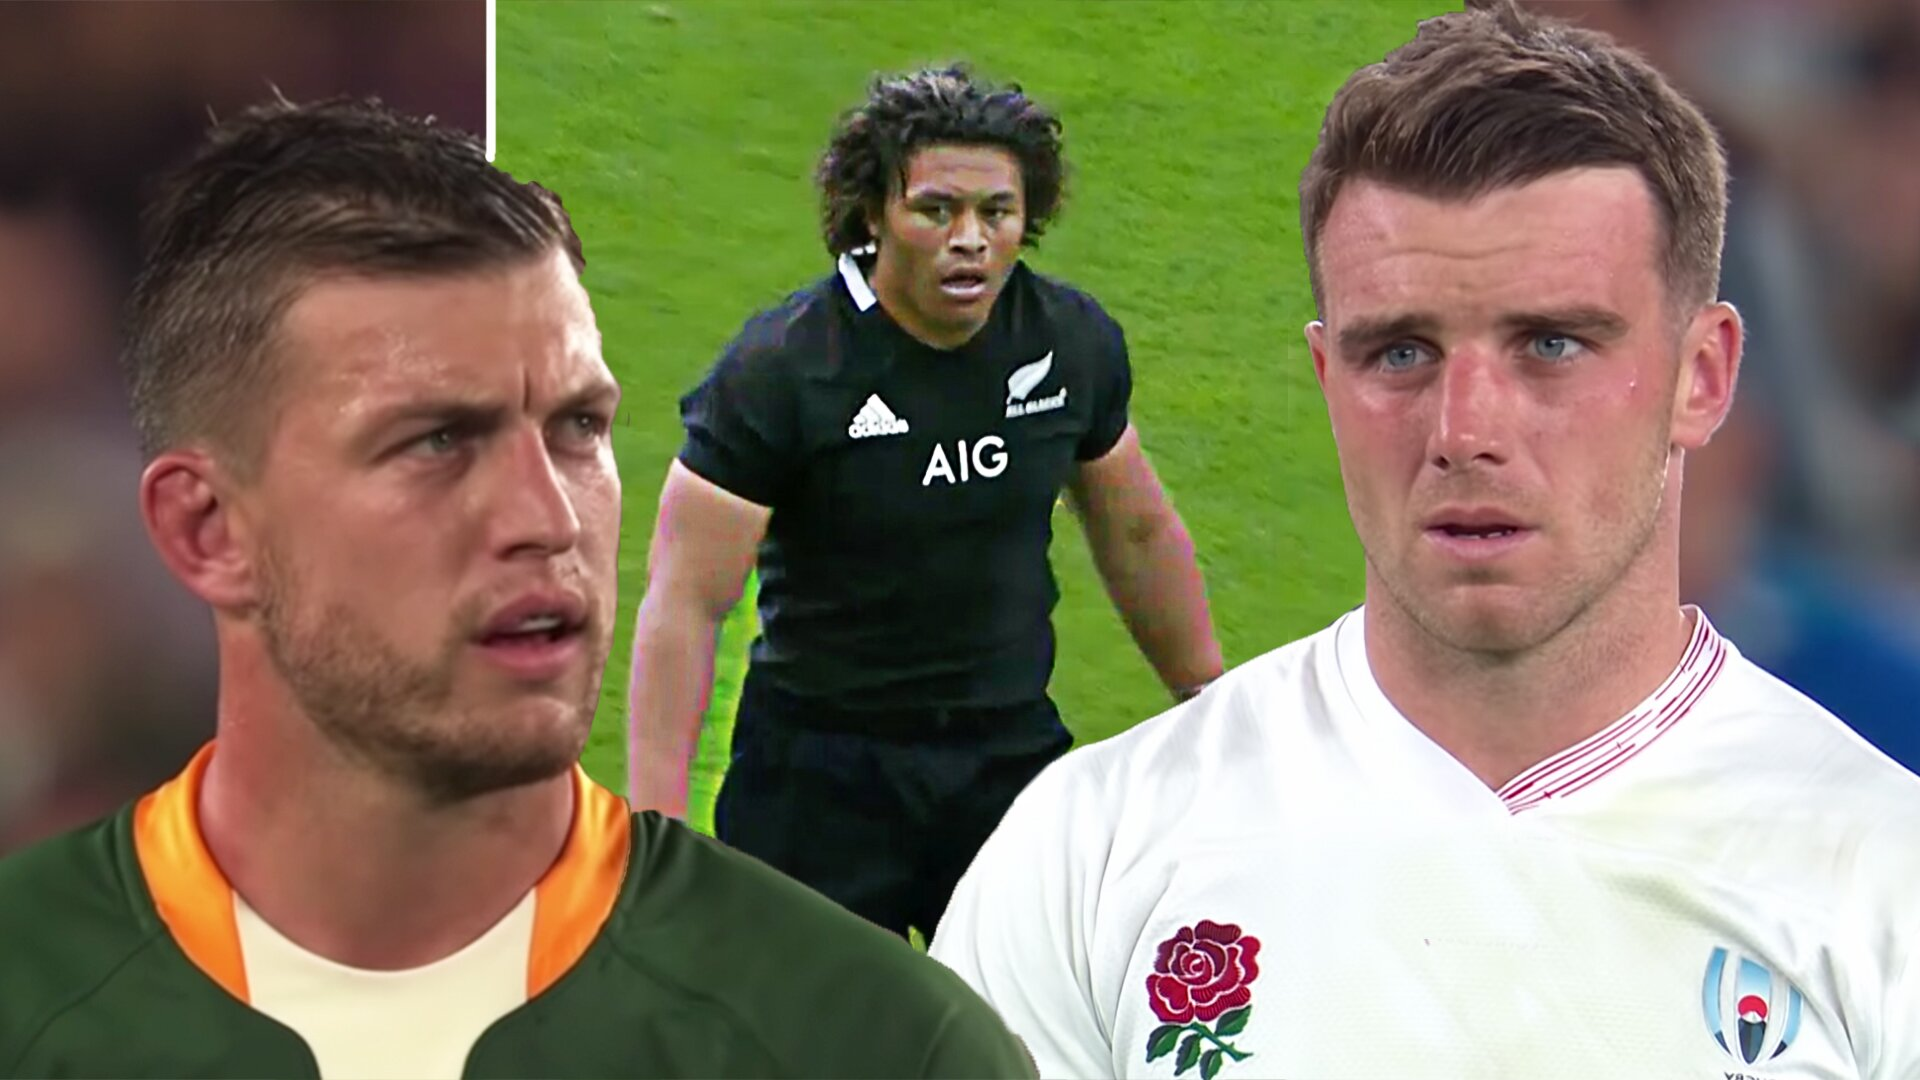 The best combined rugby team of England, South Africa and New Zealand?